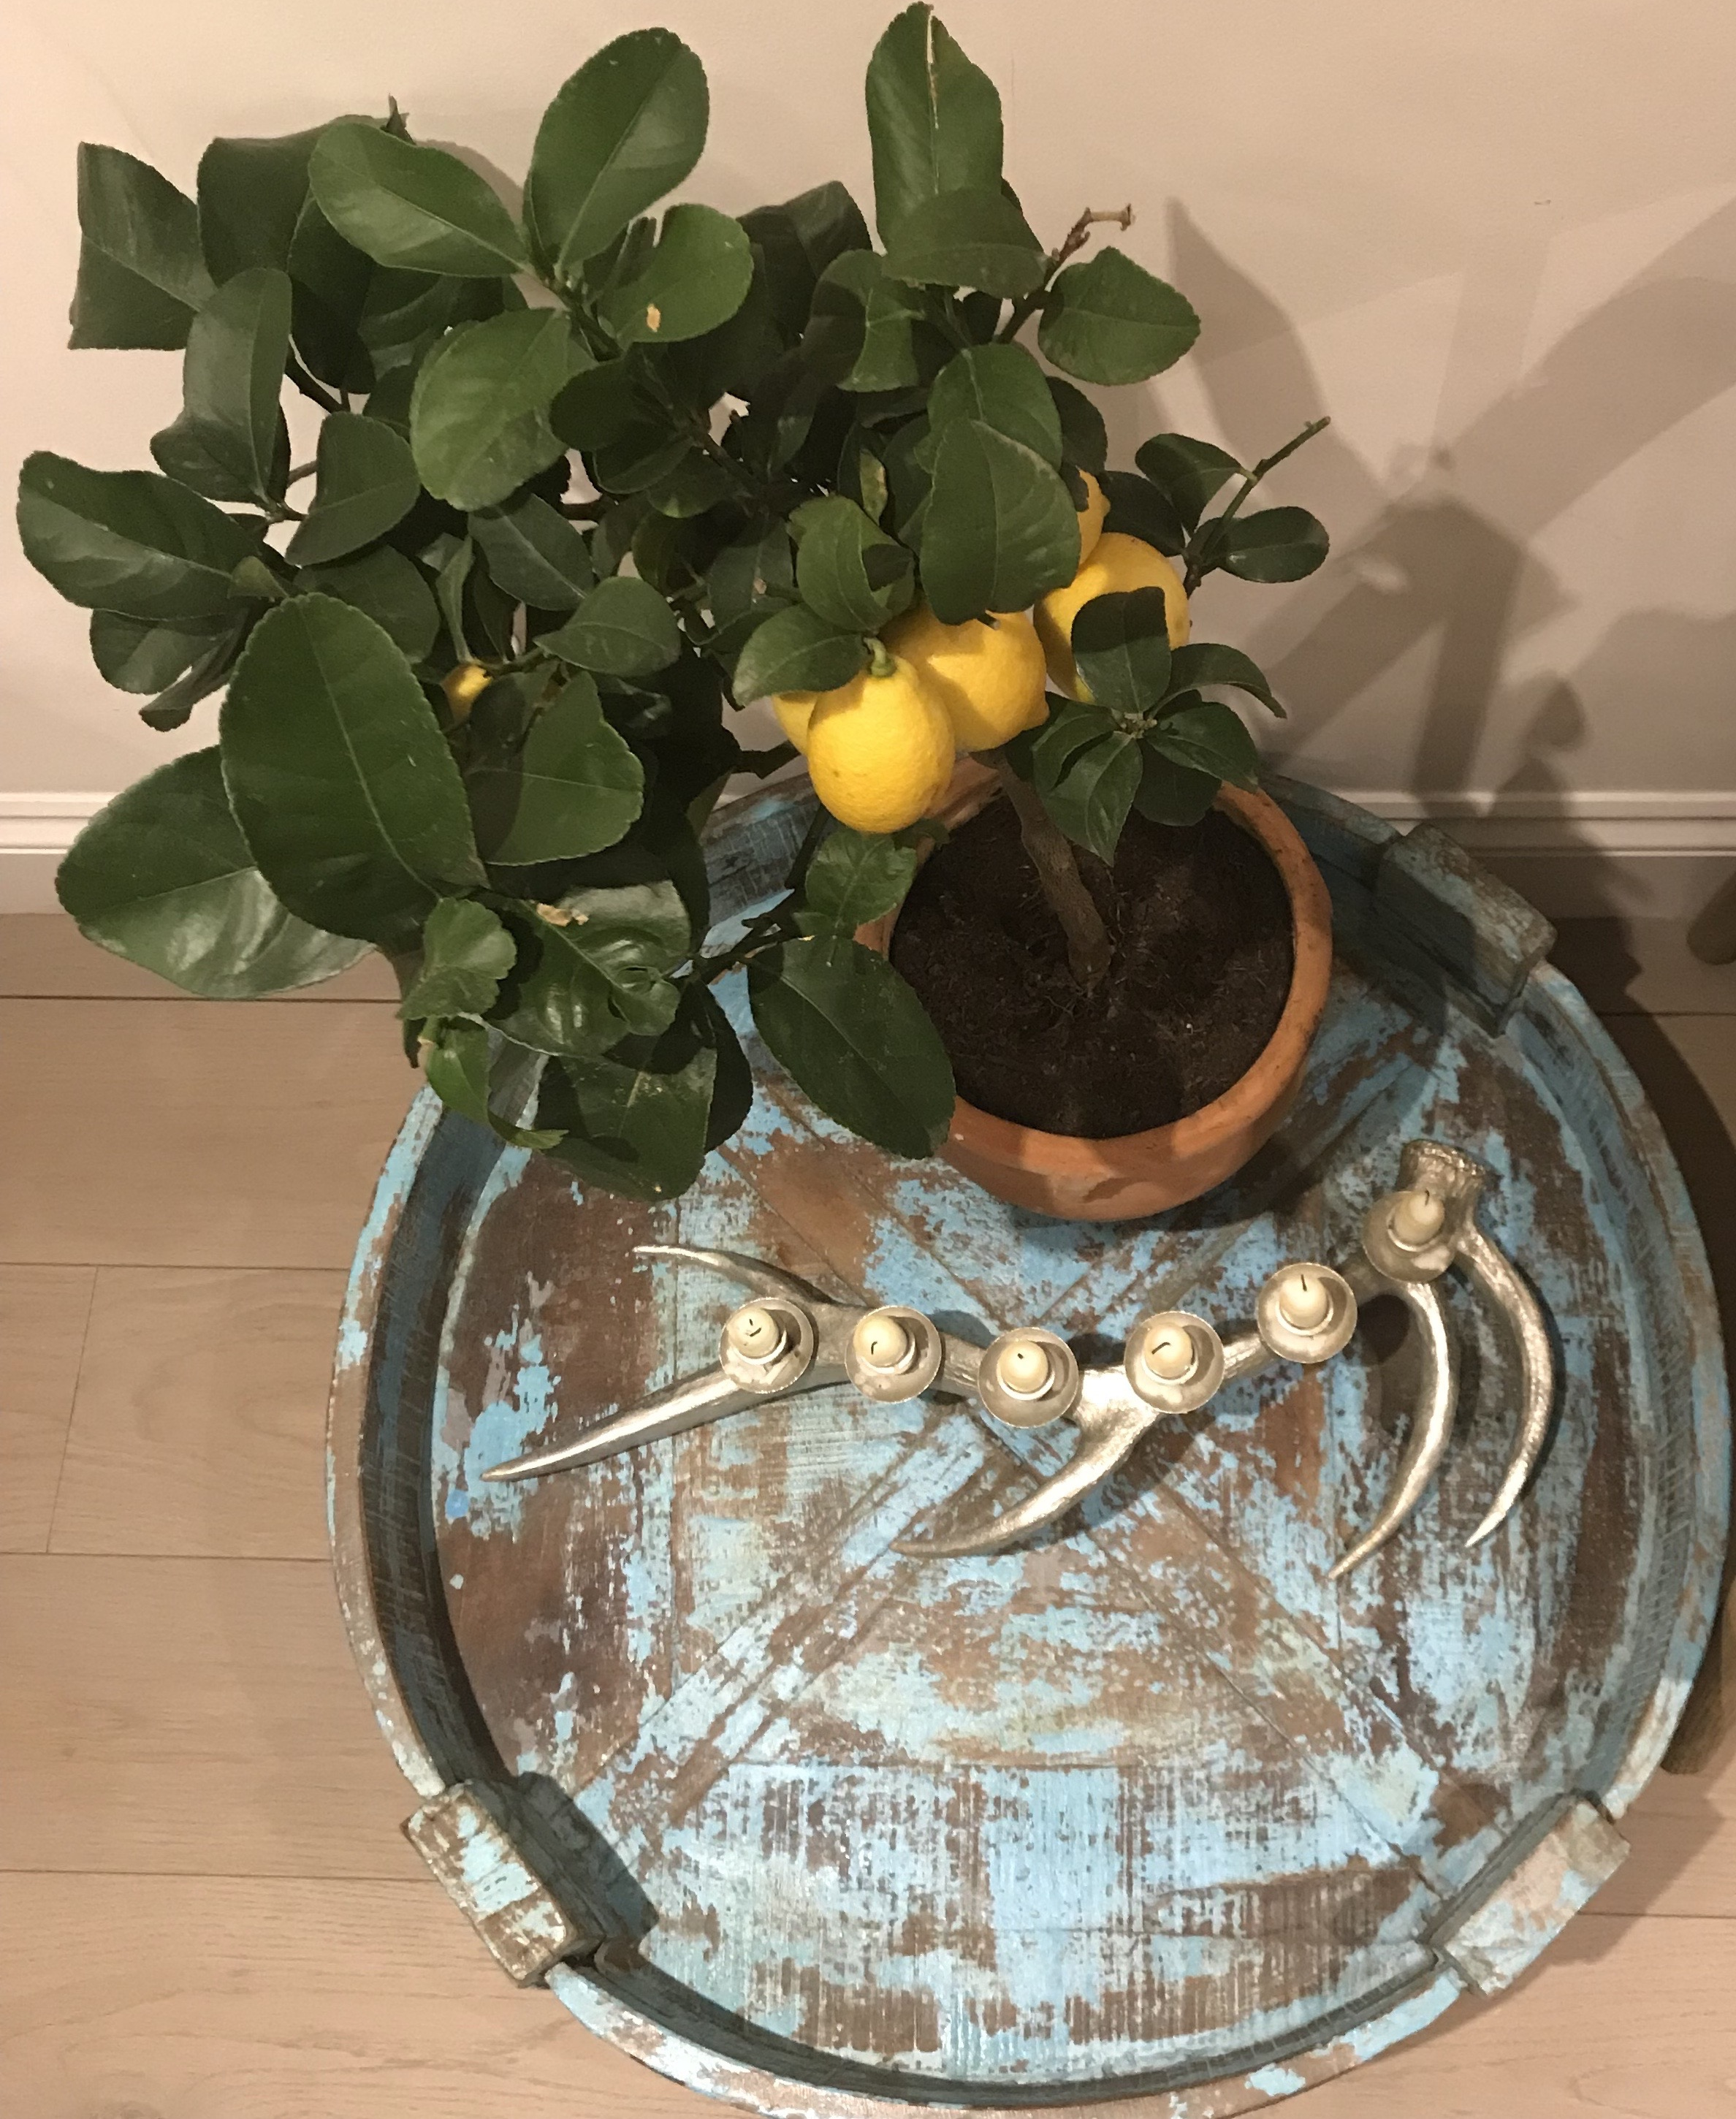 If you feel like a touch of sunshine yellow you could also try a lemon tree like this one.